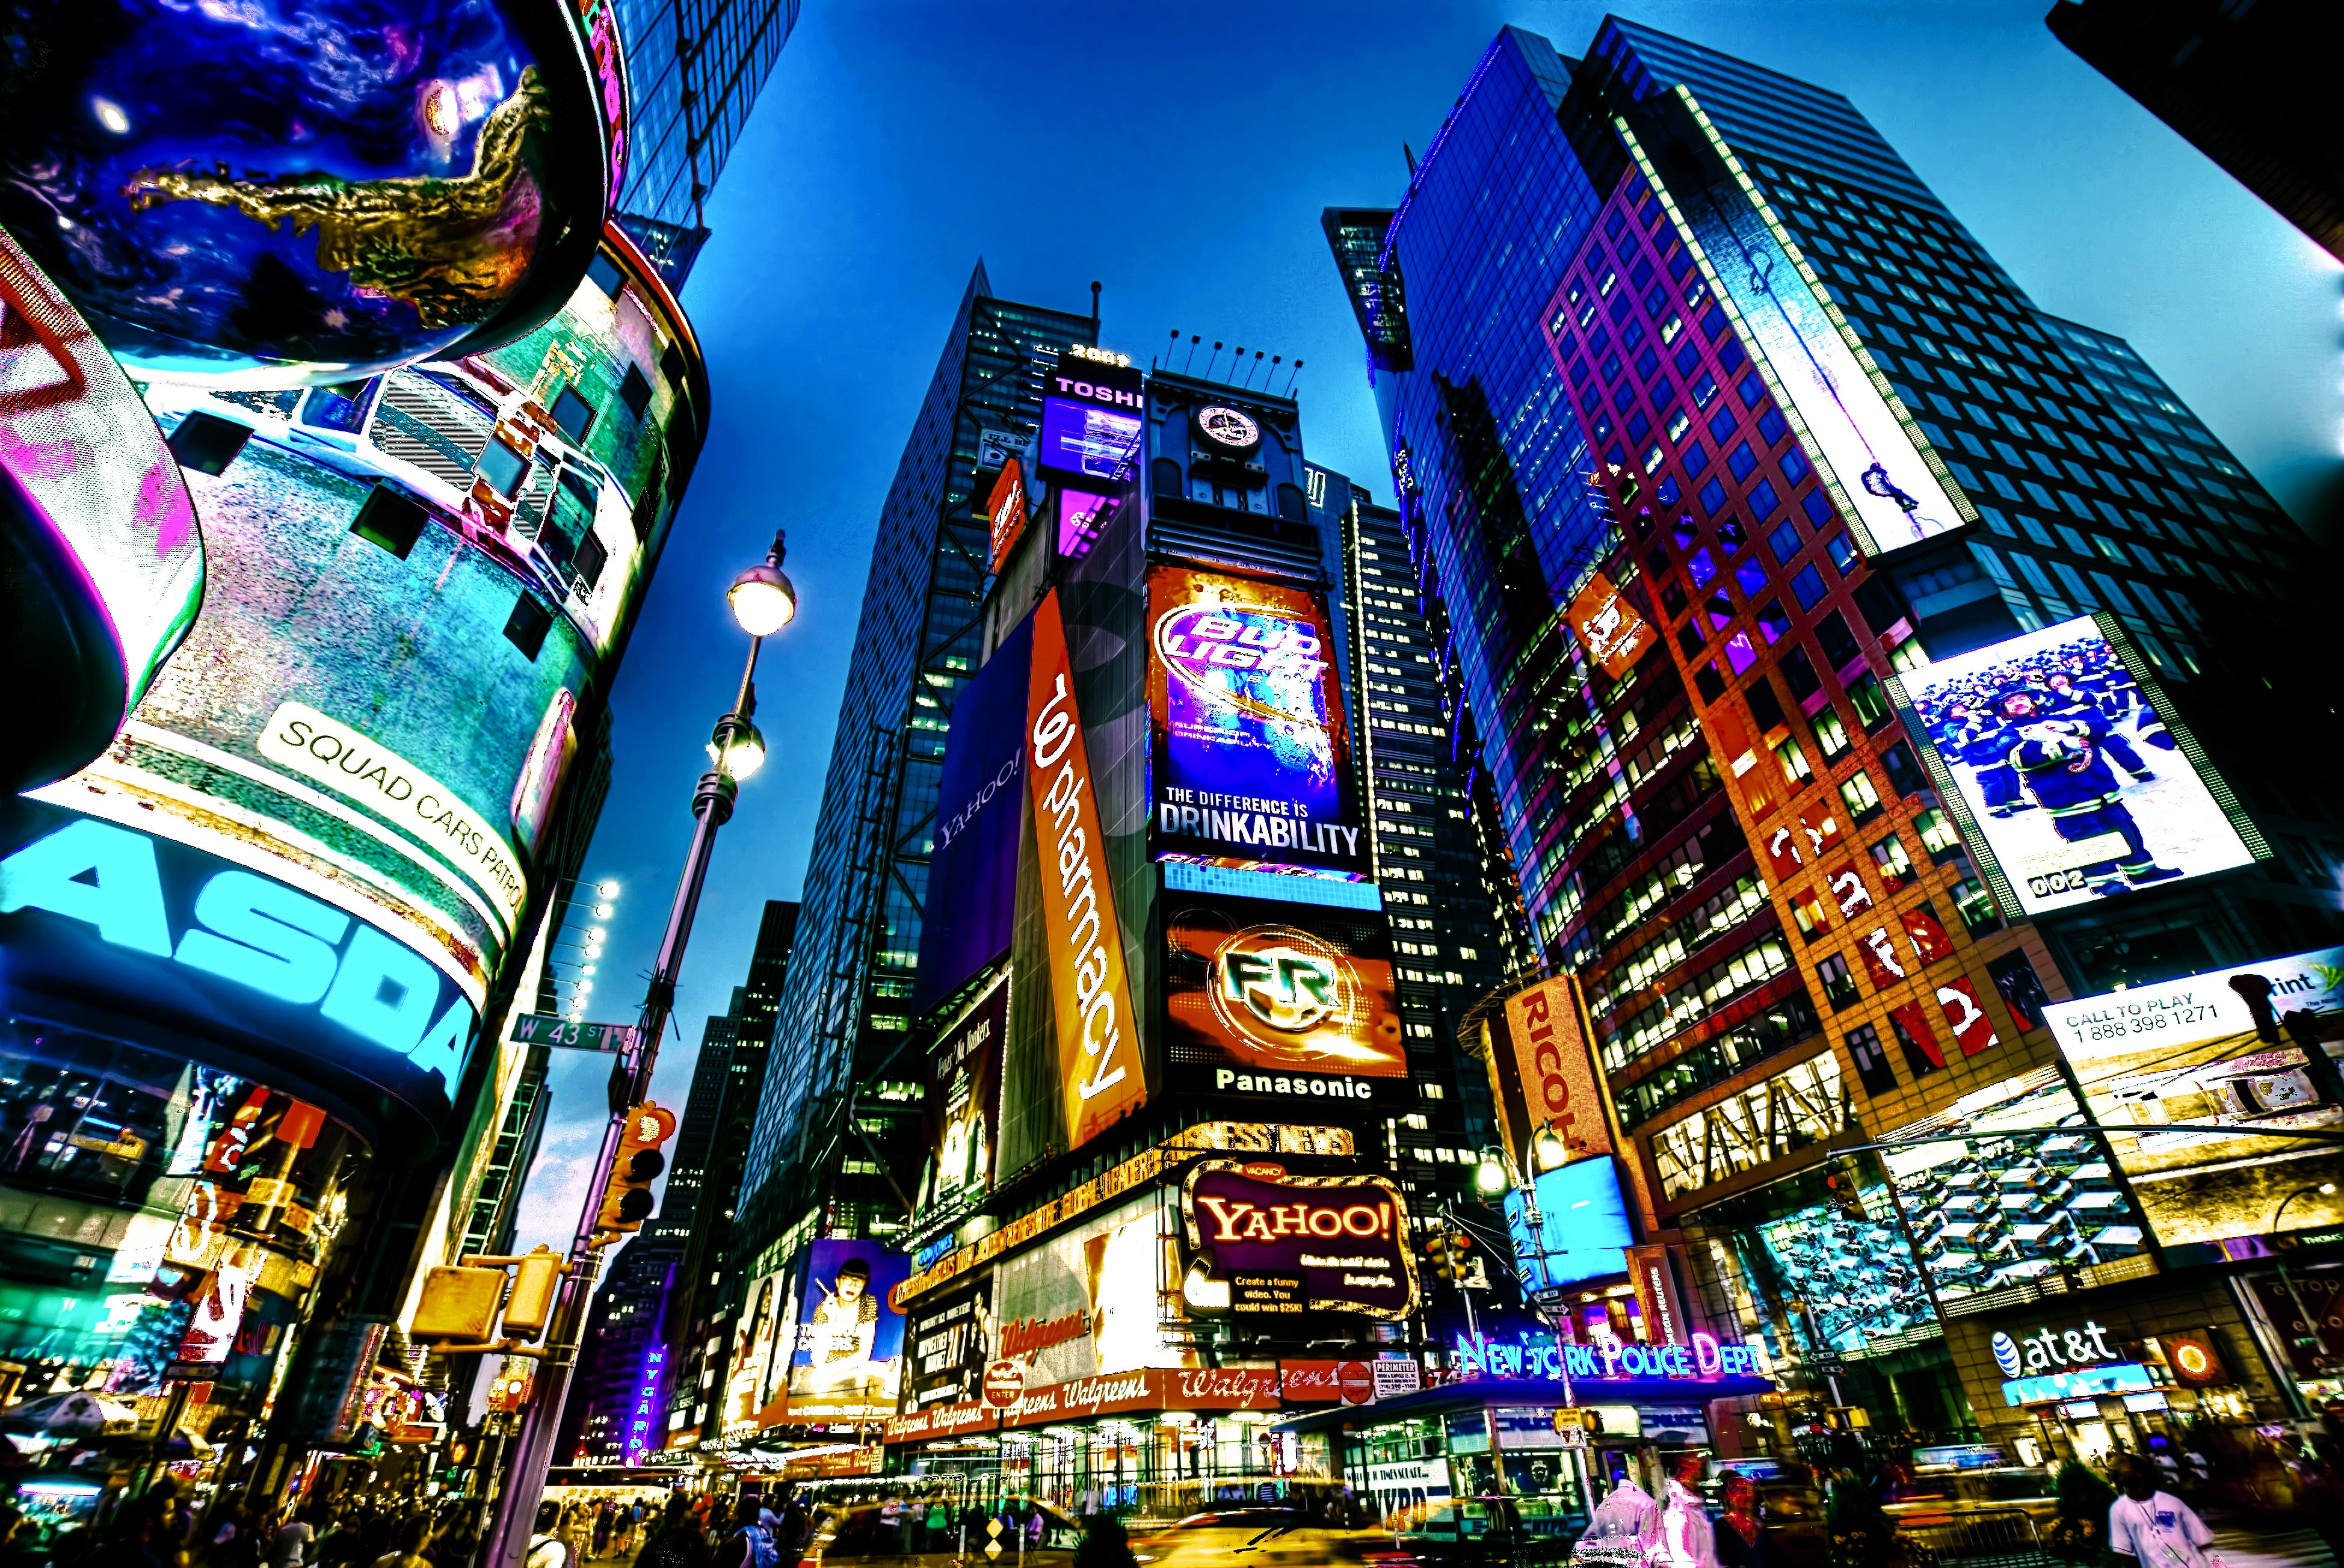 New York, New York ❤ one day